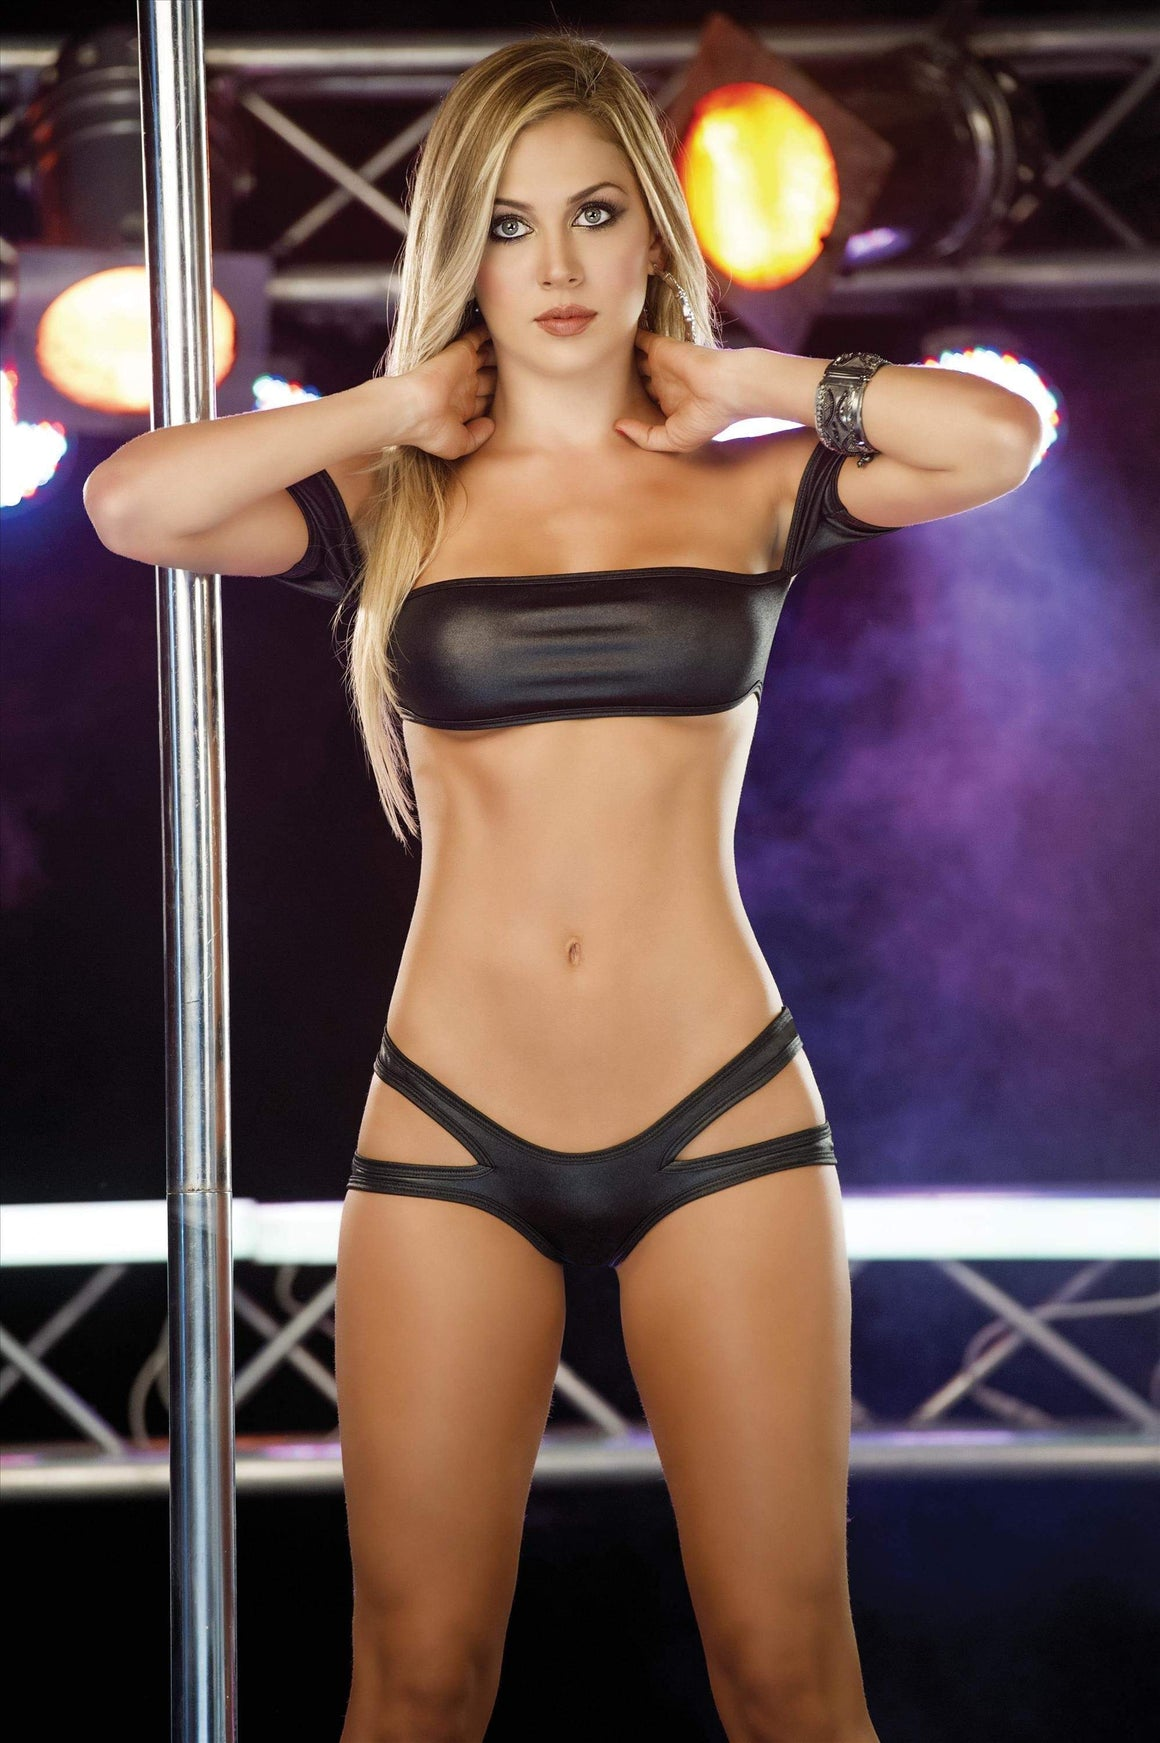 espiral Black Bandeau Top & Cheeky Cut-Out Side Bottom Set Dance Wear (Also in White) Black Bandeau Top & Cheeky Cut-Out Side Bottom Set Dance Wear (Also in White) Apparel & Accessories > Clothing > Underwear & Socks > Lingerie